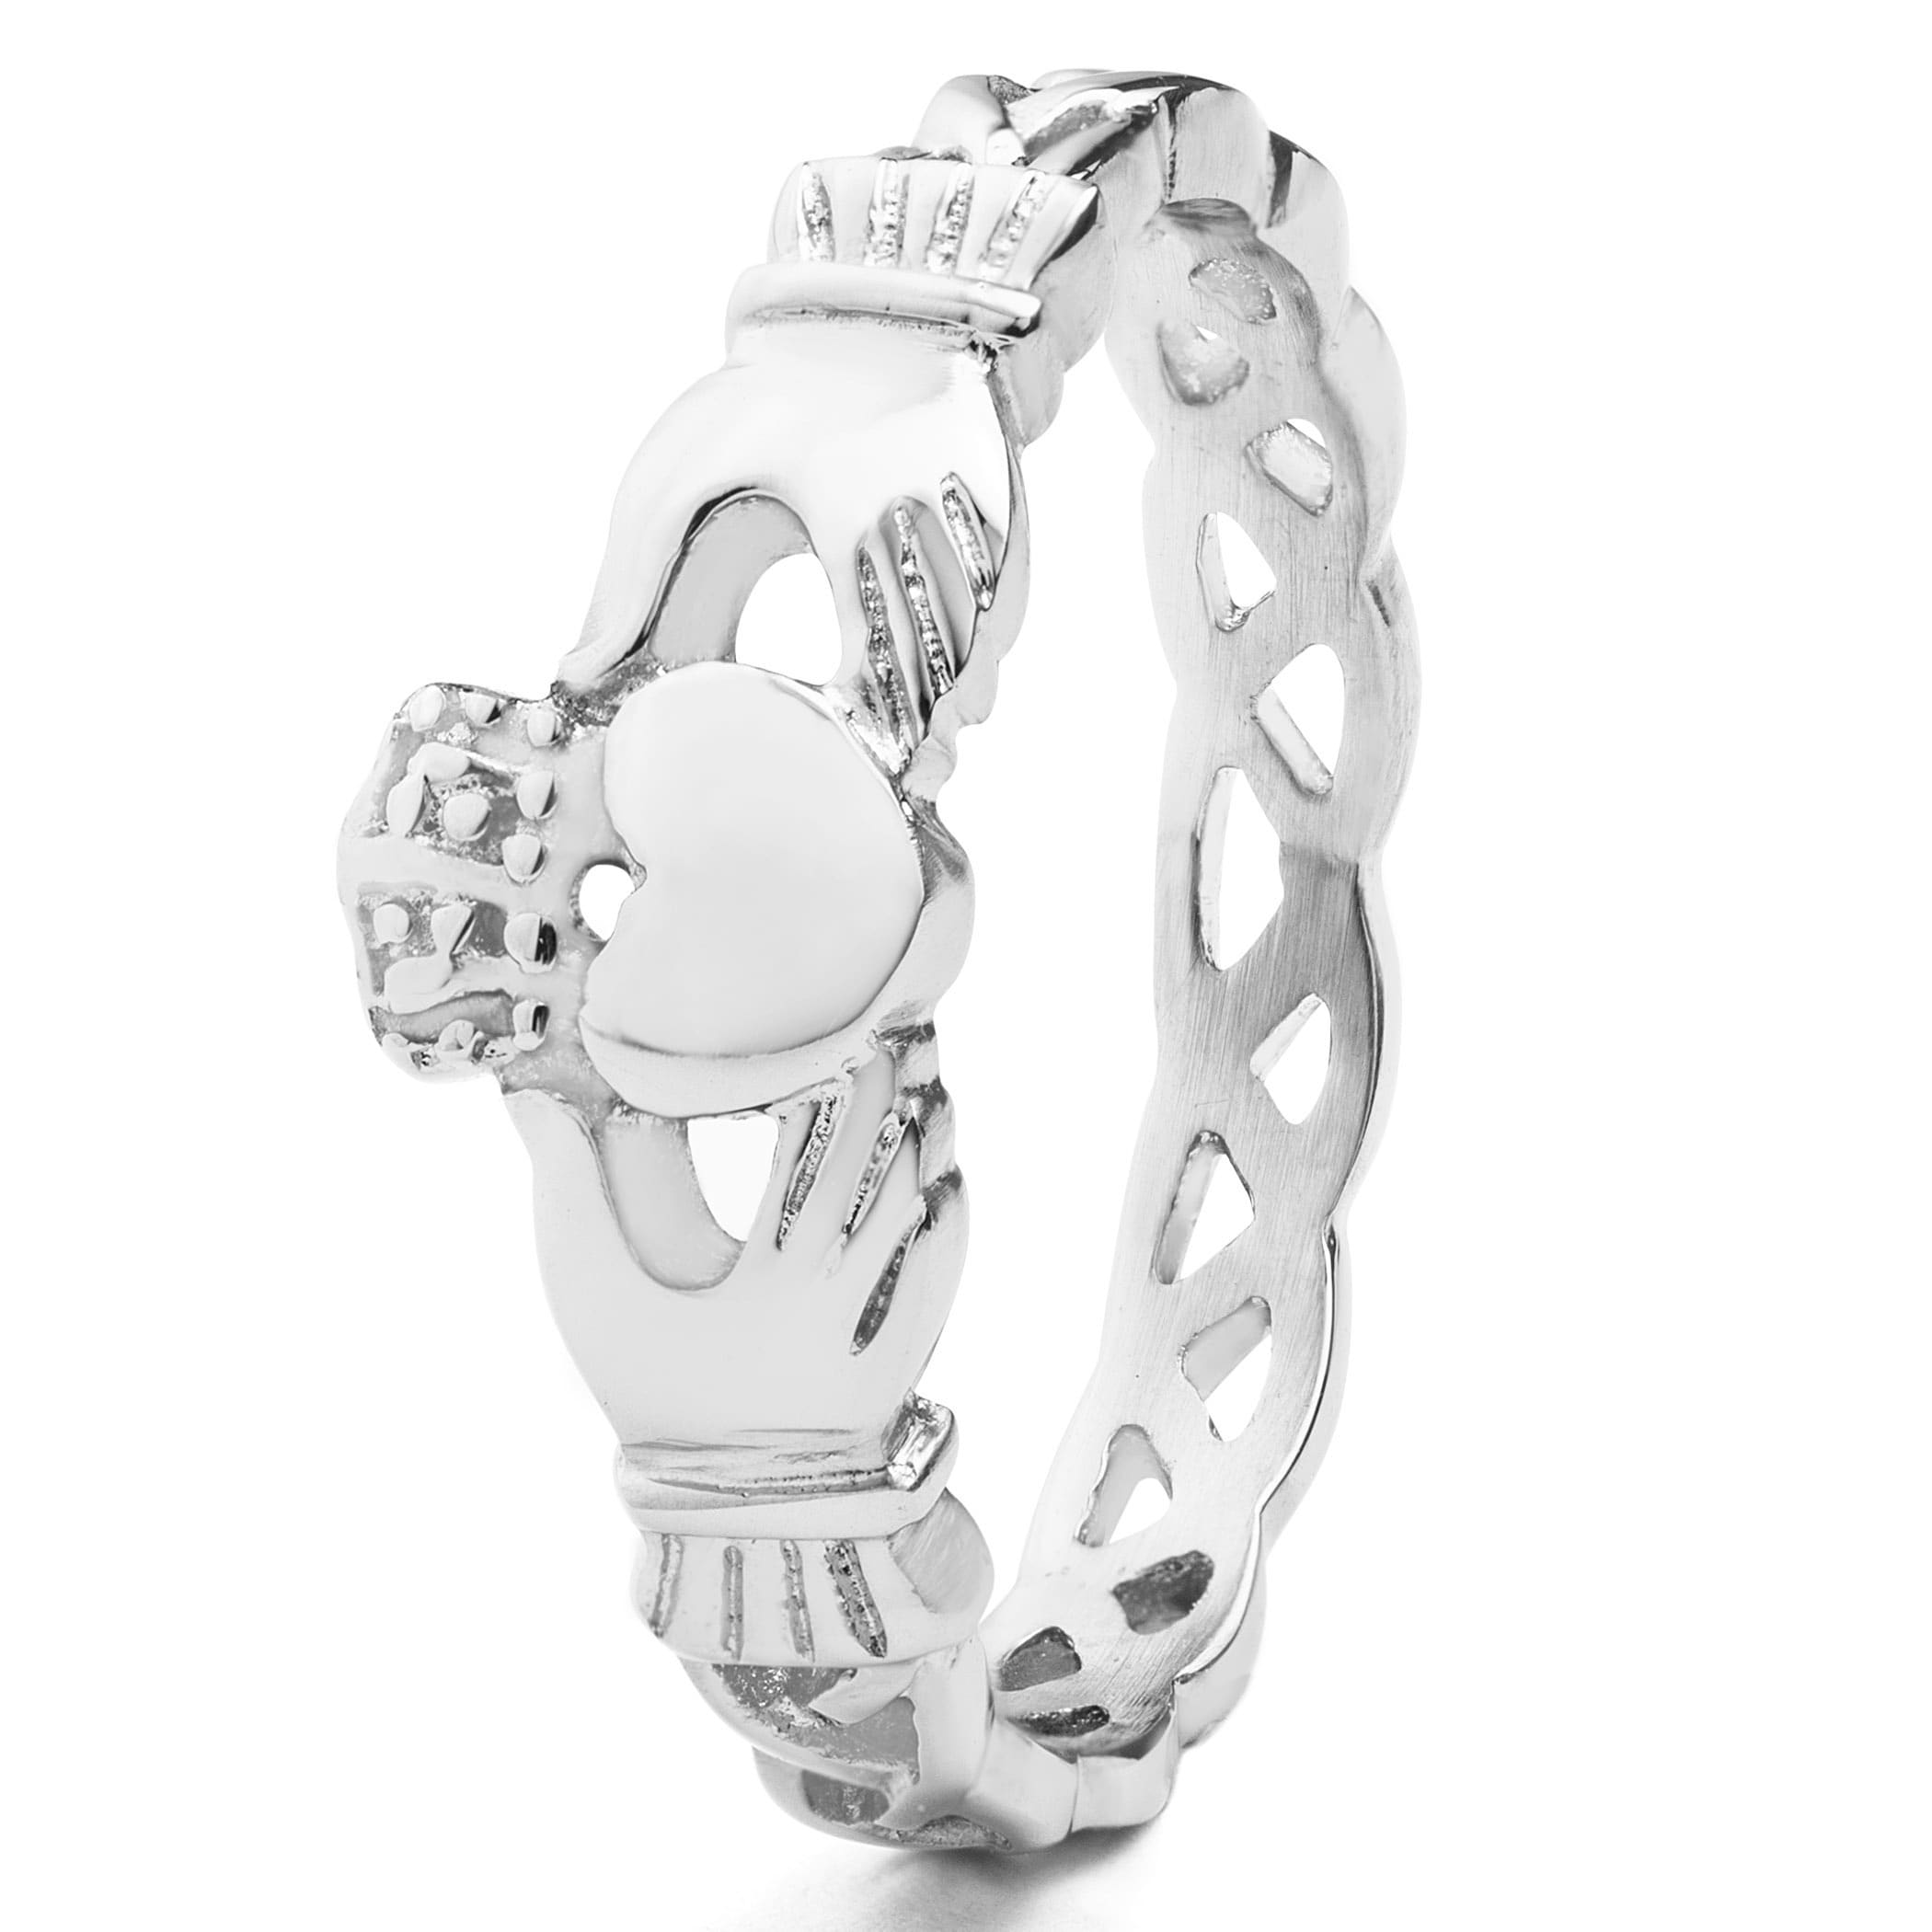 ring engagementdetails wedding engagement cfm knot celtic accents with tone two rings diamond